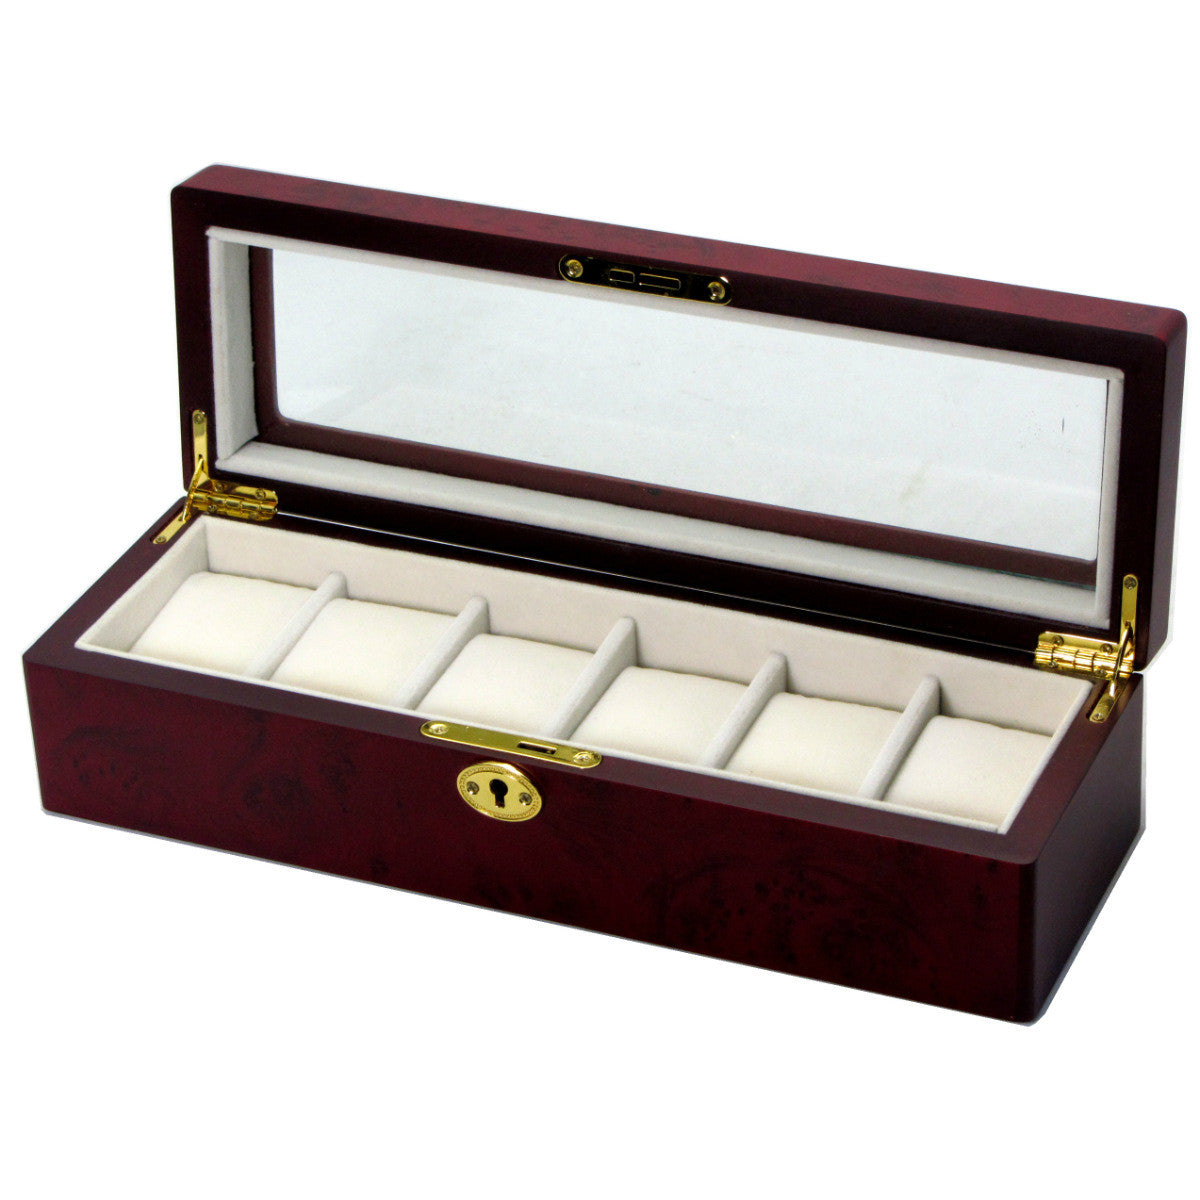 Pearl Time 6 Watch Box Glass Lid, Cherrywood, 34cm